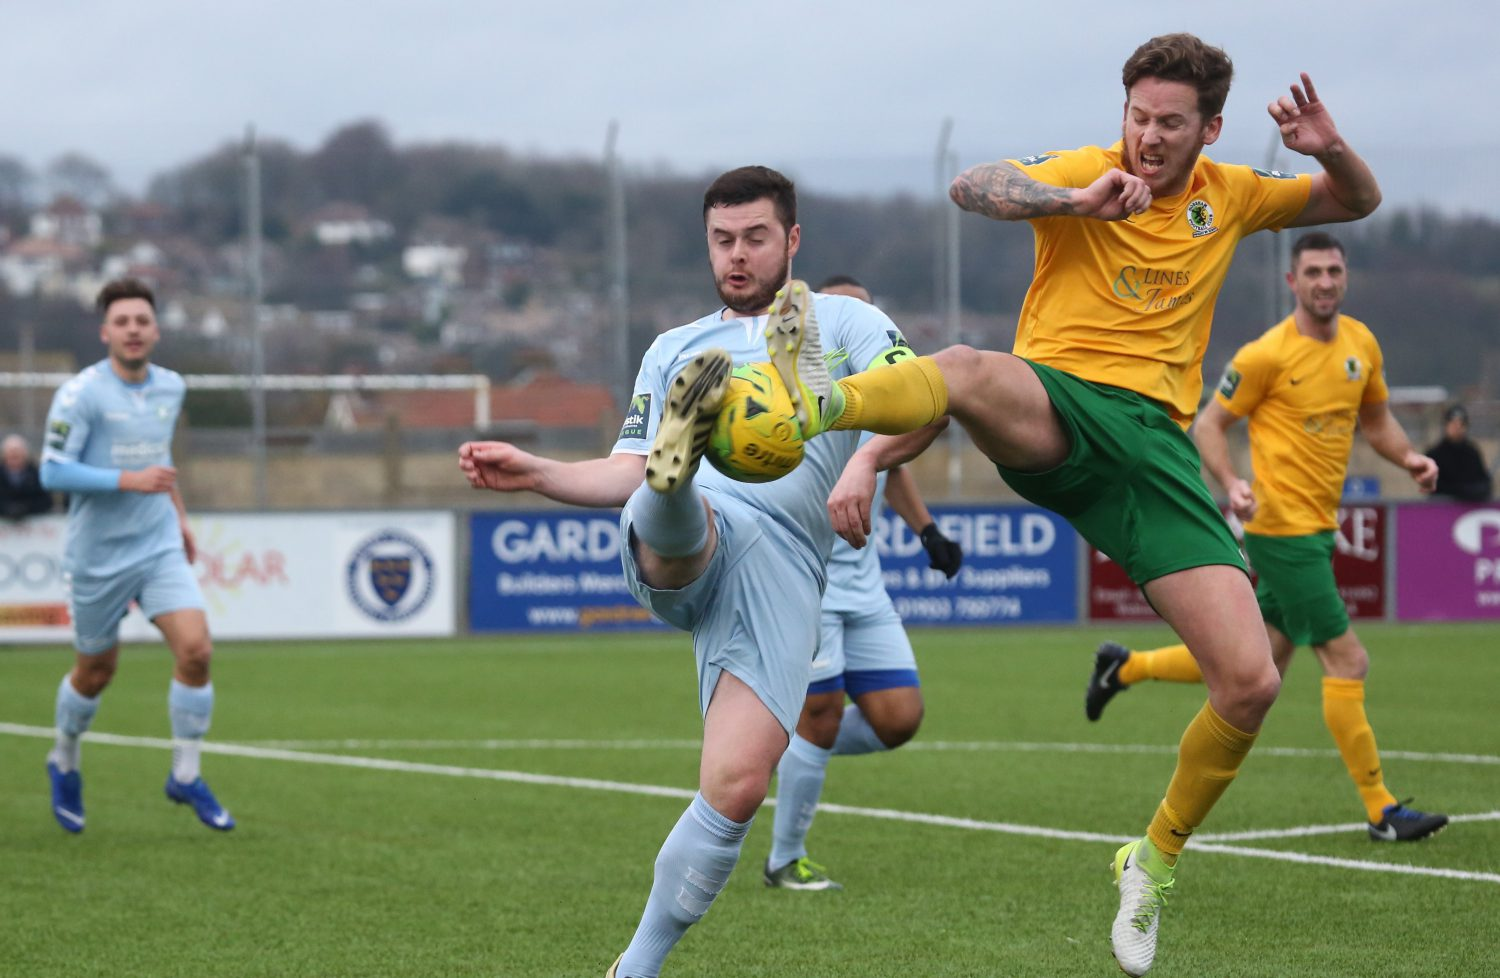 Horsham vs Whyteleafe